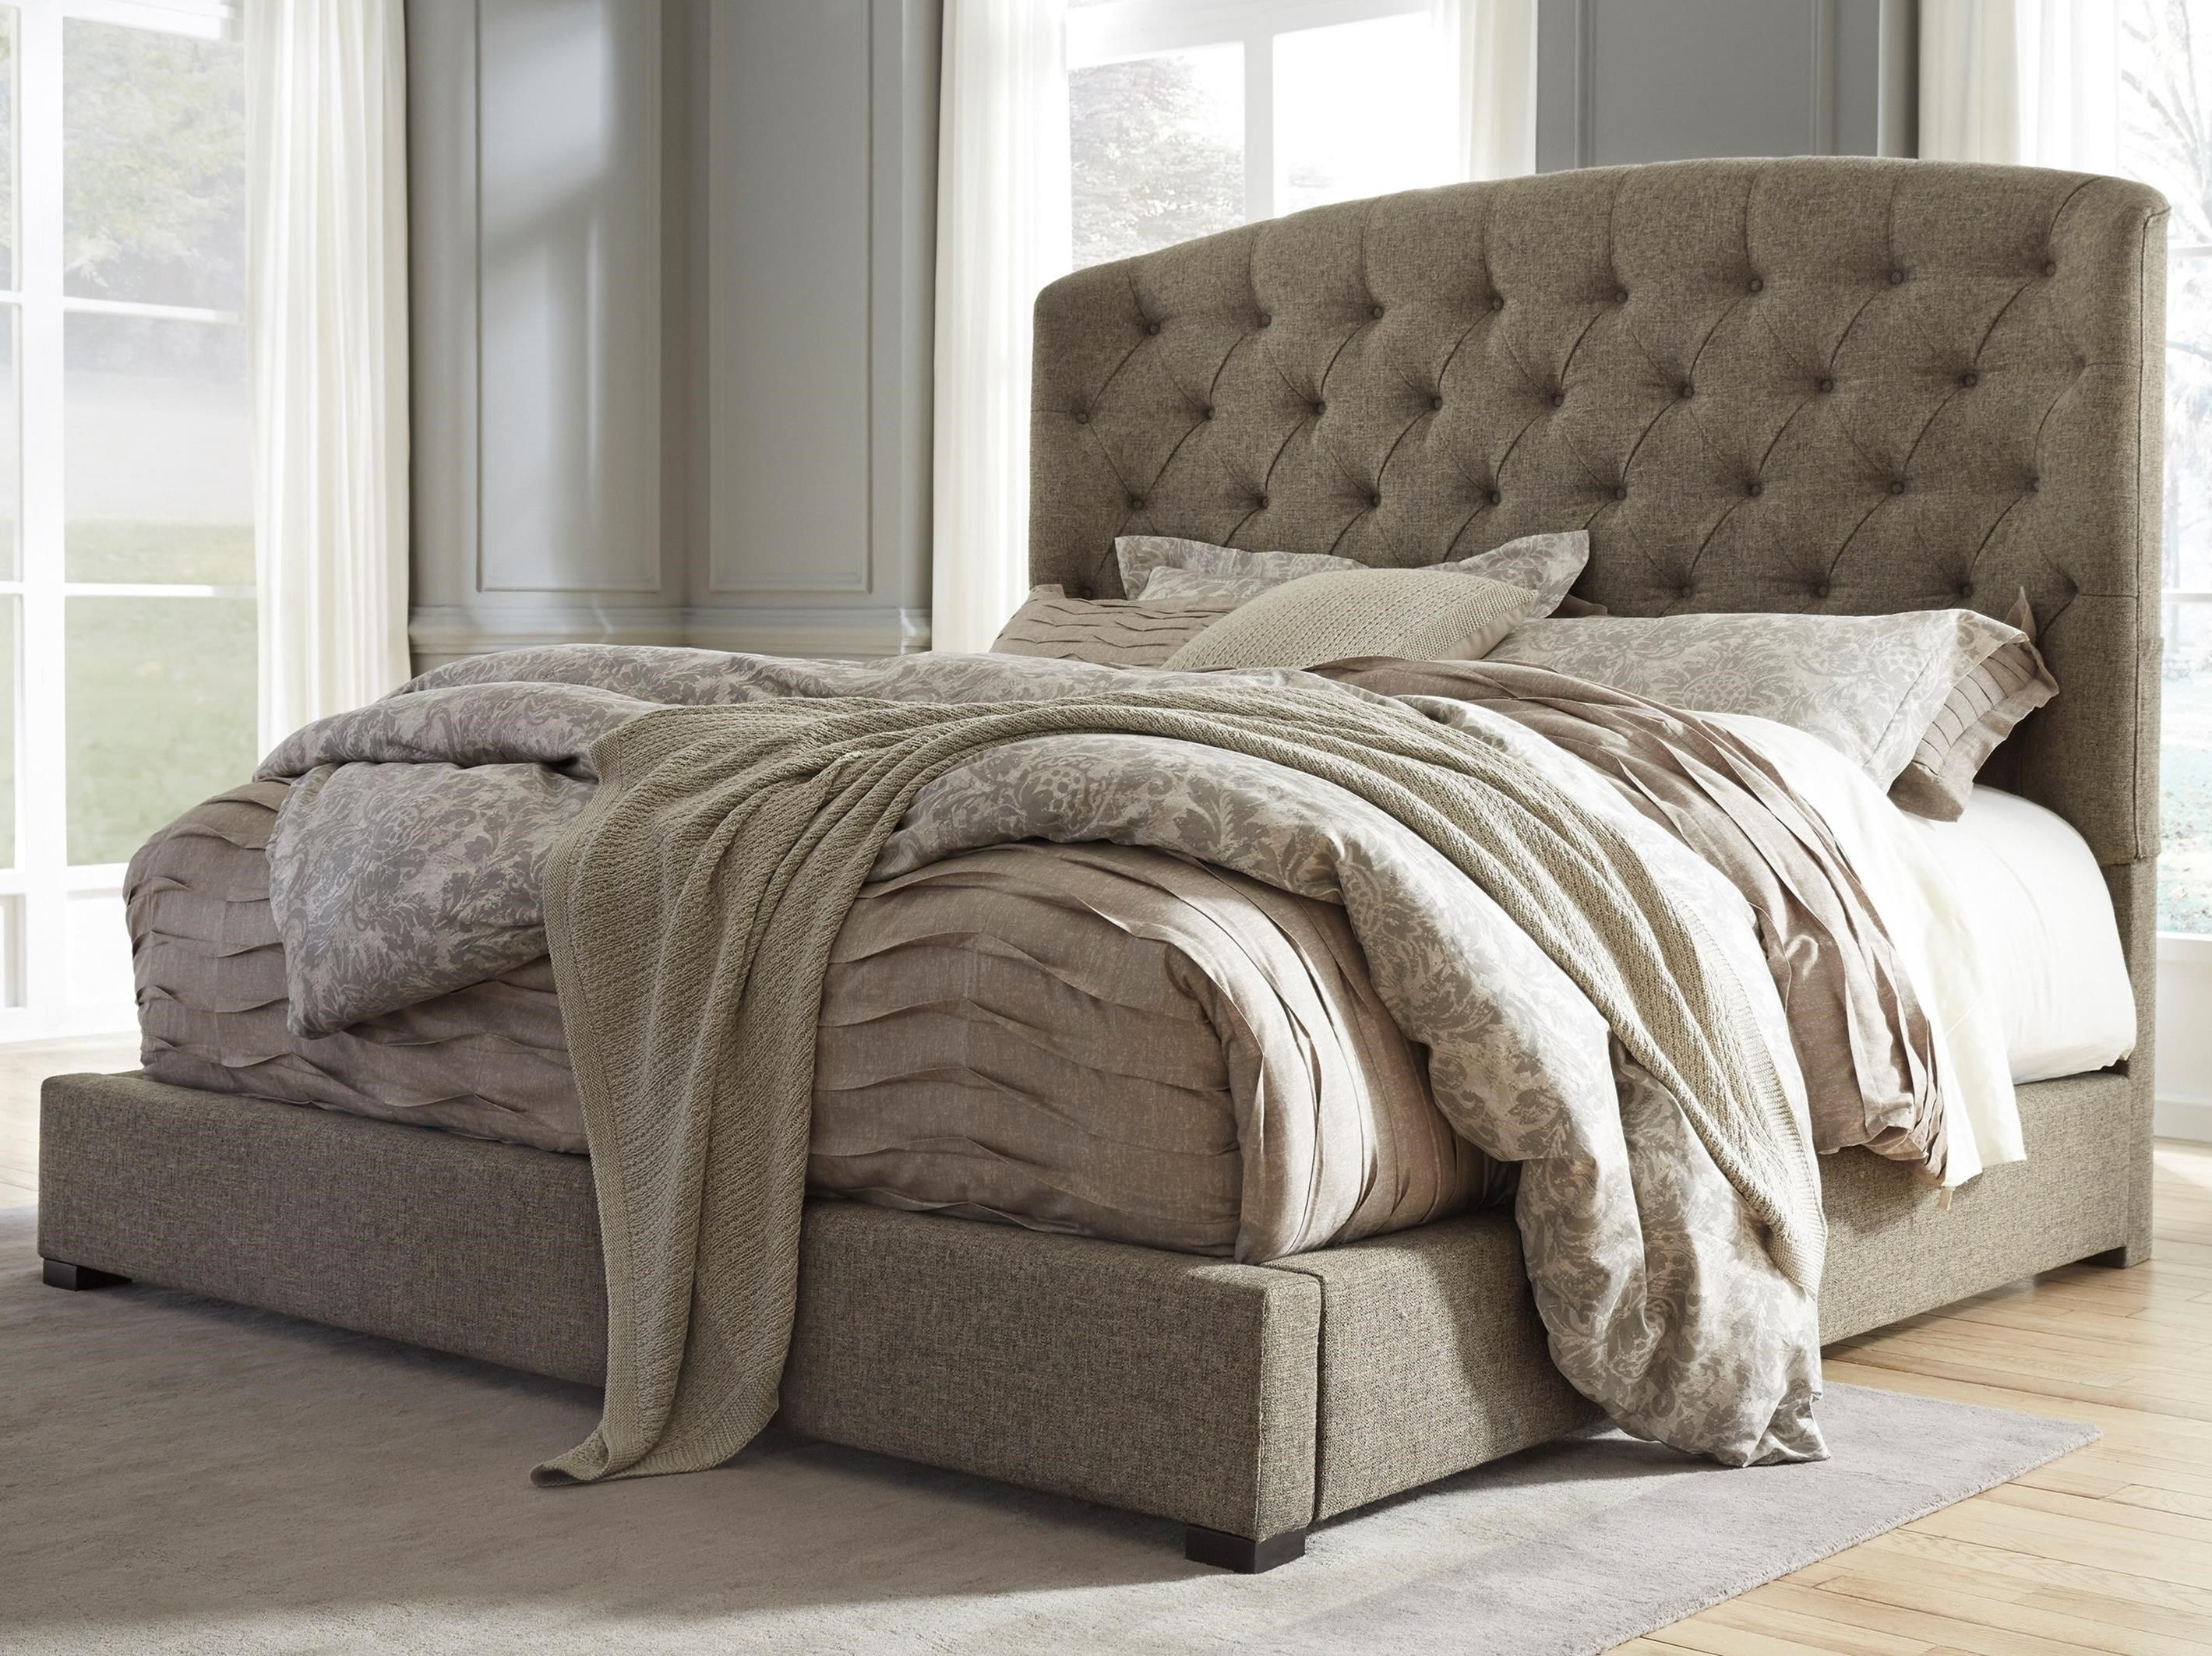 Very Low Bed Signature Design By Ashley Gerlane King Upholstered Bed